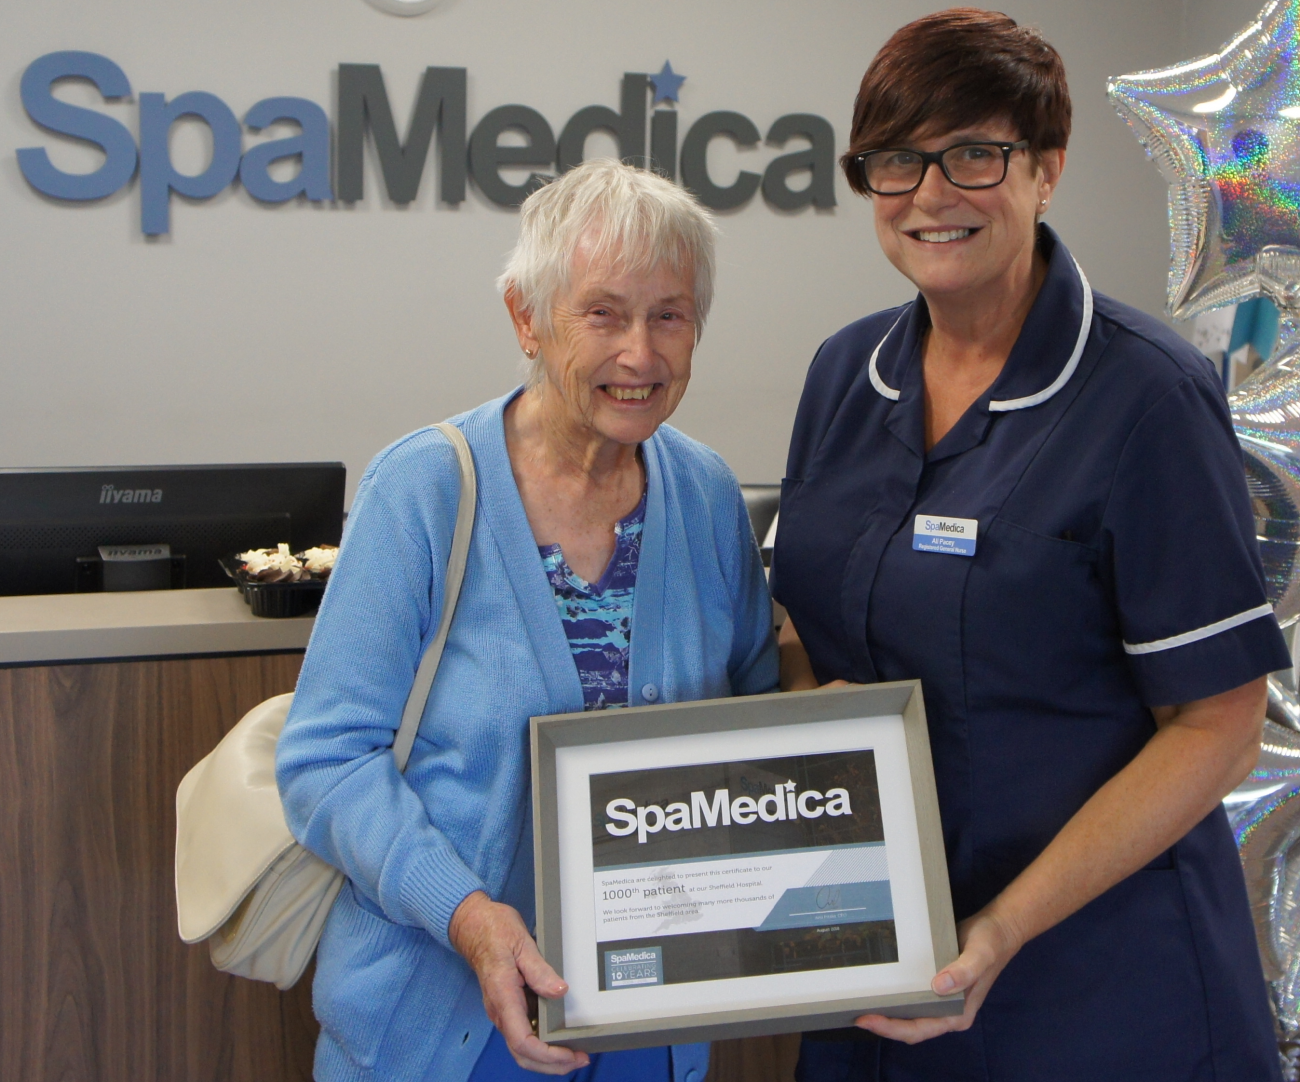 Rita and Ailson 1000th cataract patient SpaMedica Sheffield